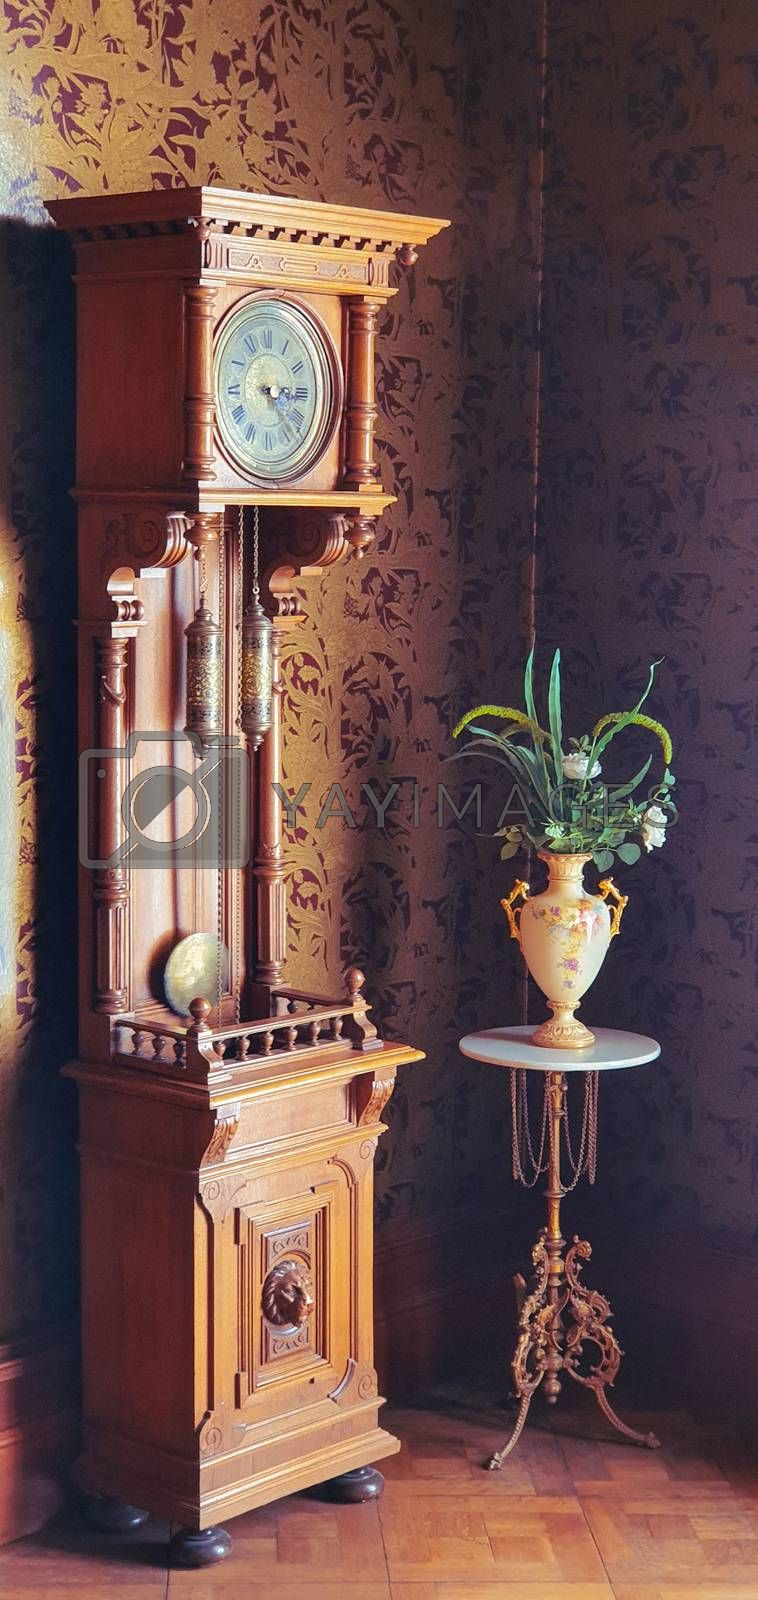 Old fashioned grandfather clock with pendulum and antique vase with flowers in a room with retro designer wallpaper.